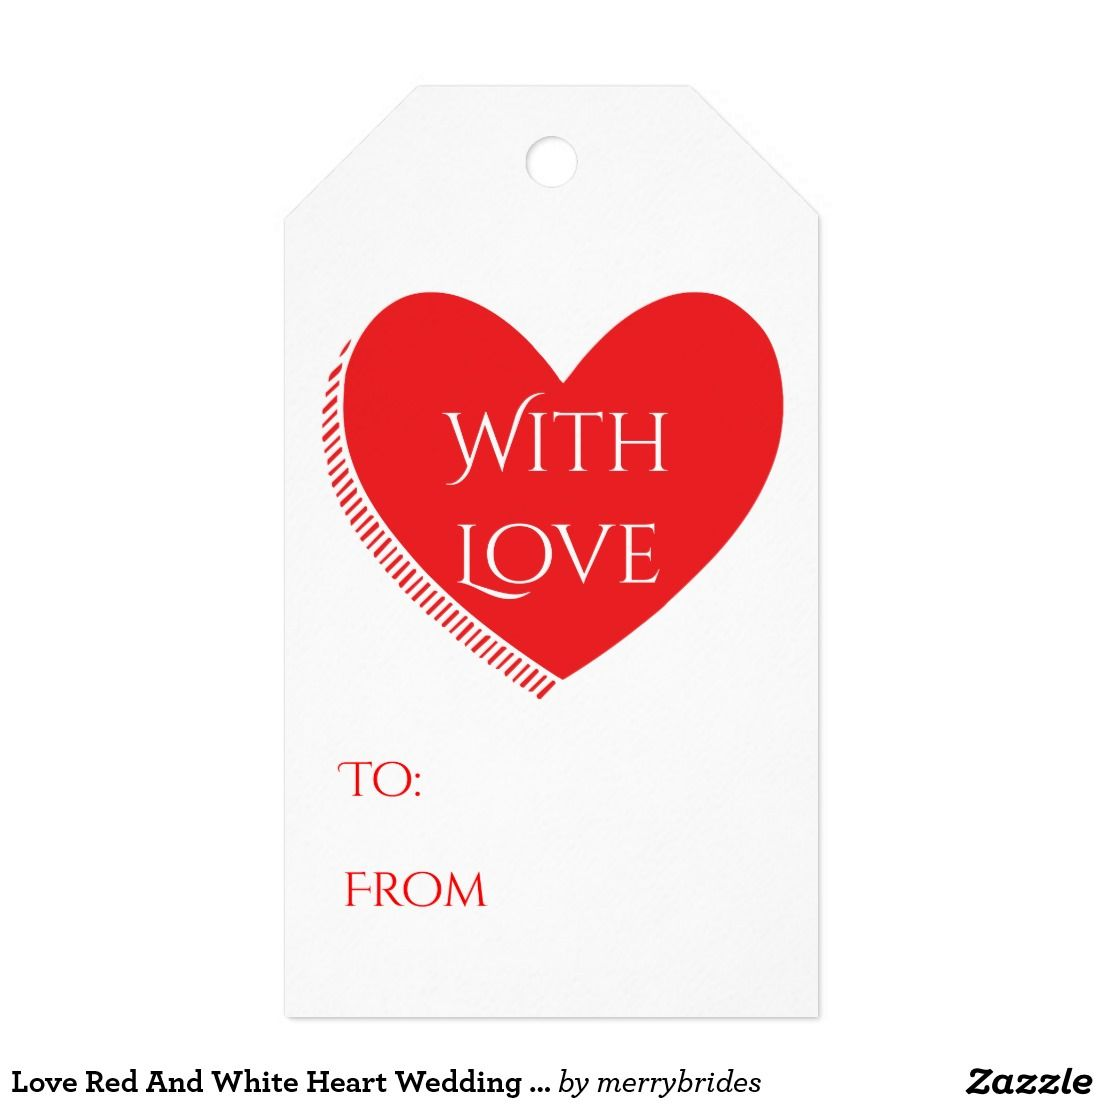 Love Red And White Heart Wedding Party Gift Favor Gift Tags   Party ...